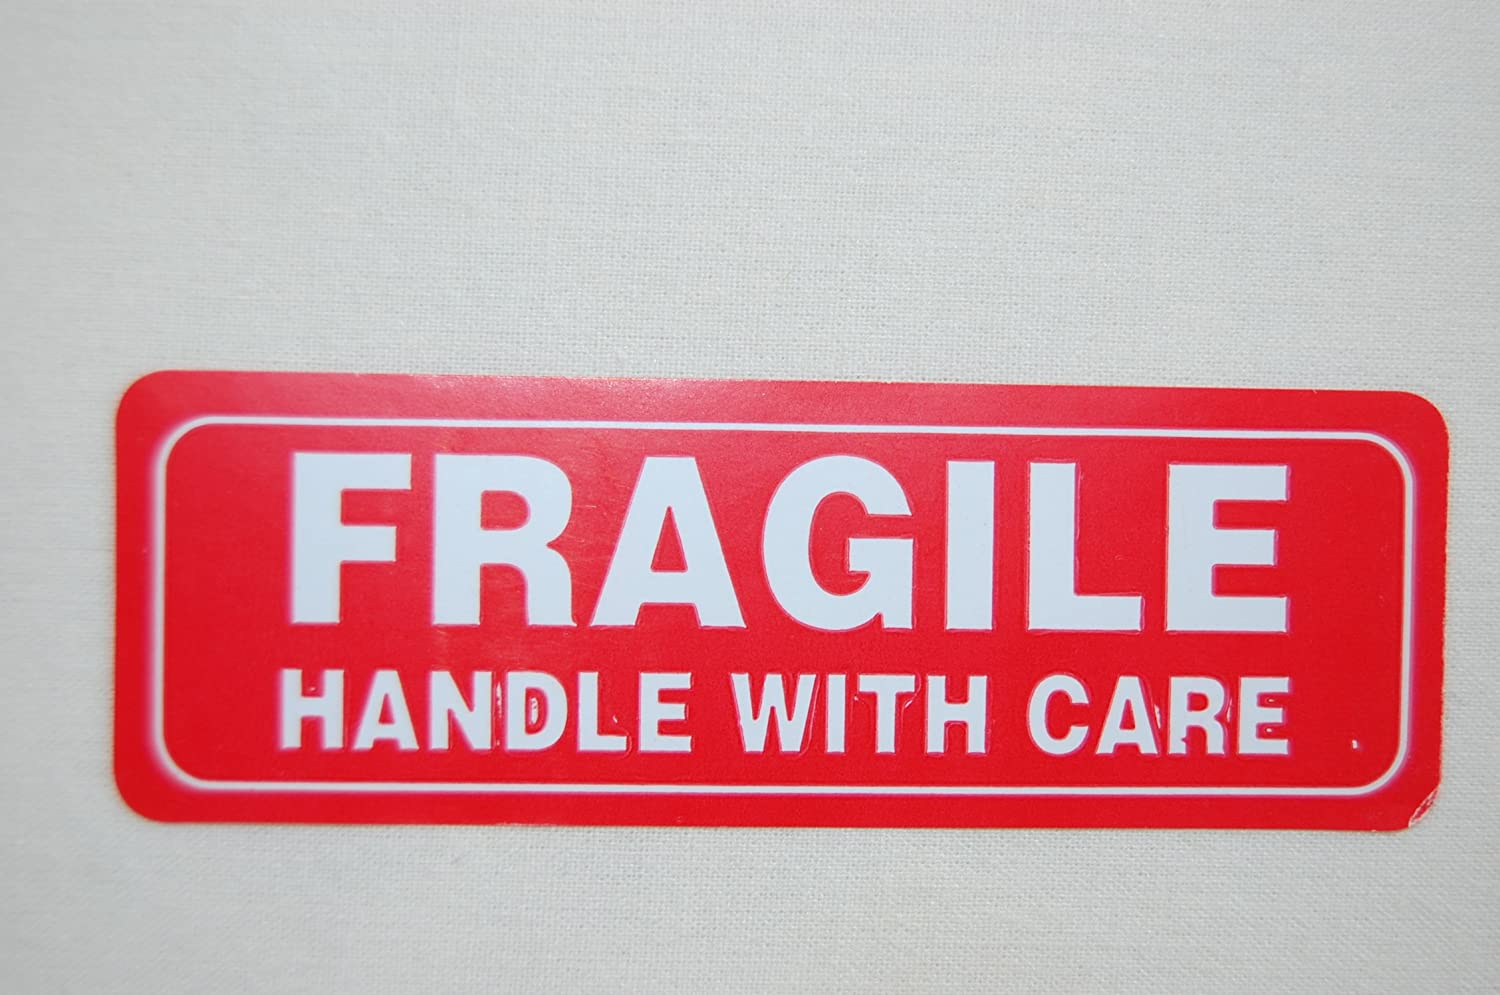 Amazon.com : 1000 FRAGILE(1x3) Sticker Handle With Care Fragile Label/ Sticker : Shipping Labels : Office Products